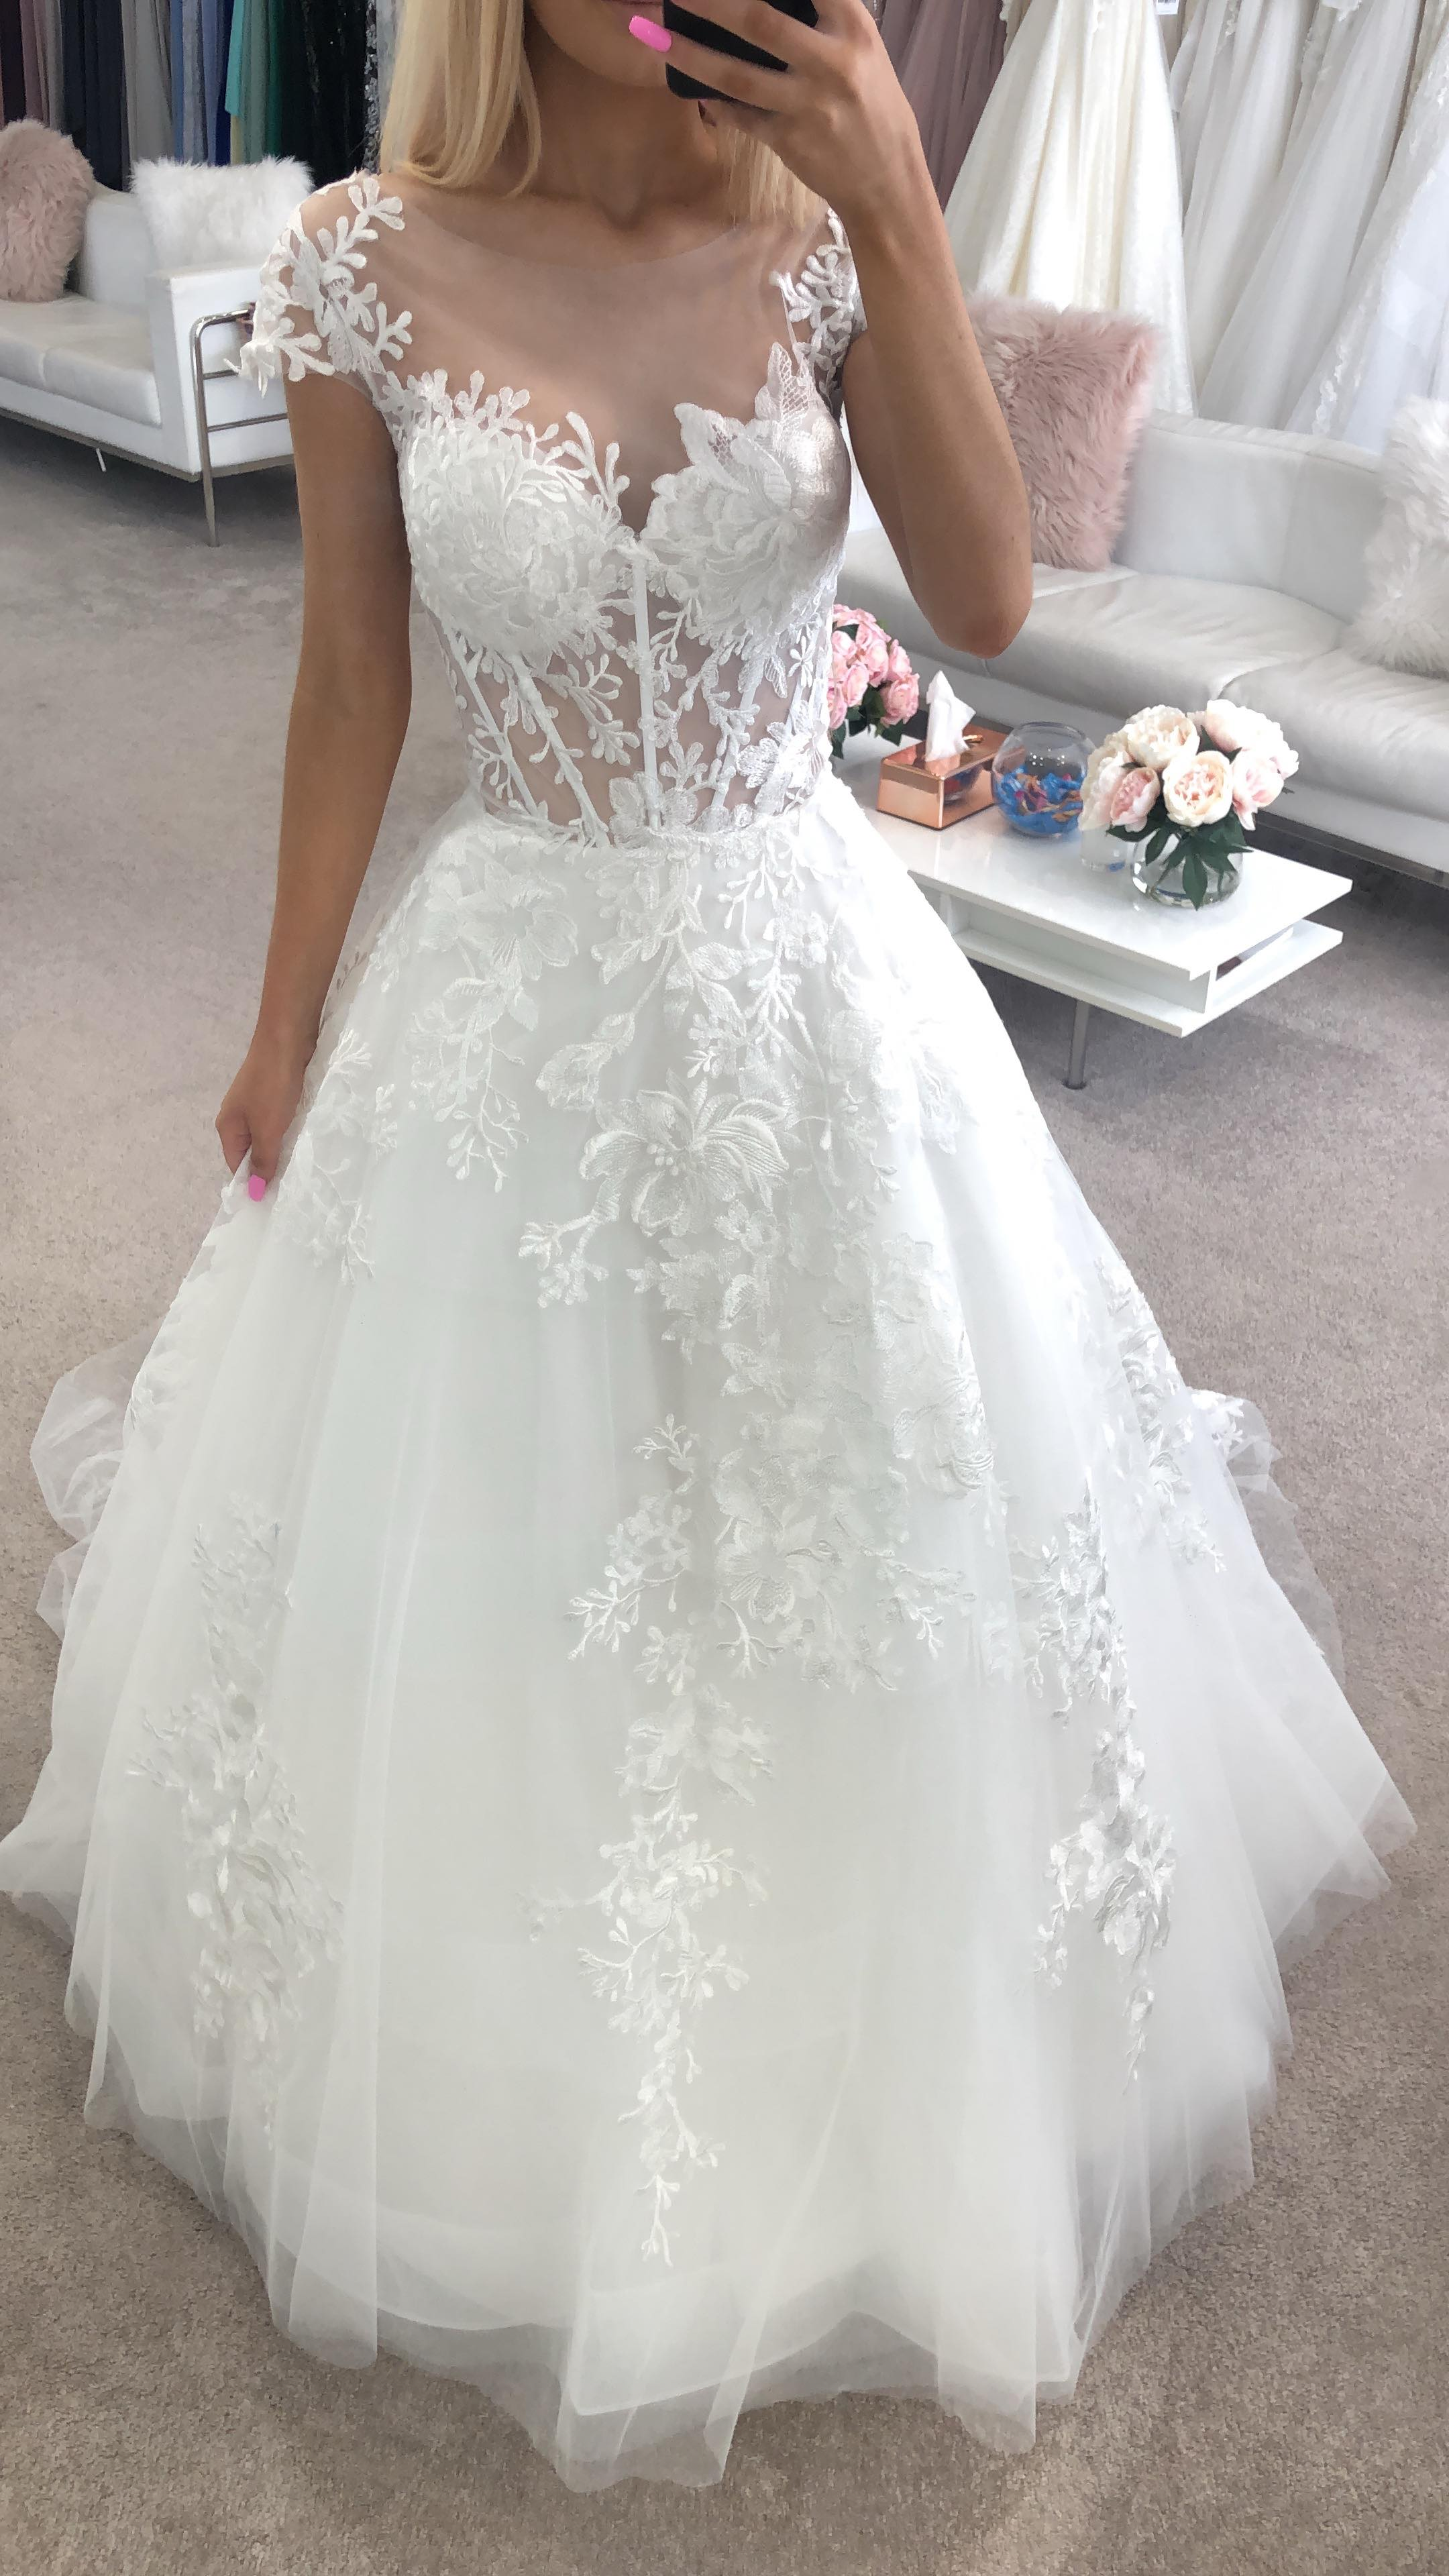 Alessia 18116 Calla Blanche L'amour Wedding Dresses Sydney Australia Afterpay Melbourne Brisbane Canberra Adelaide